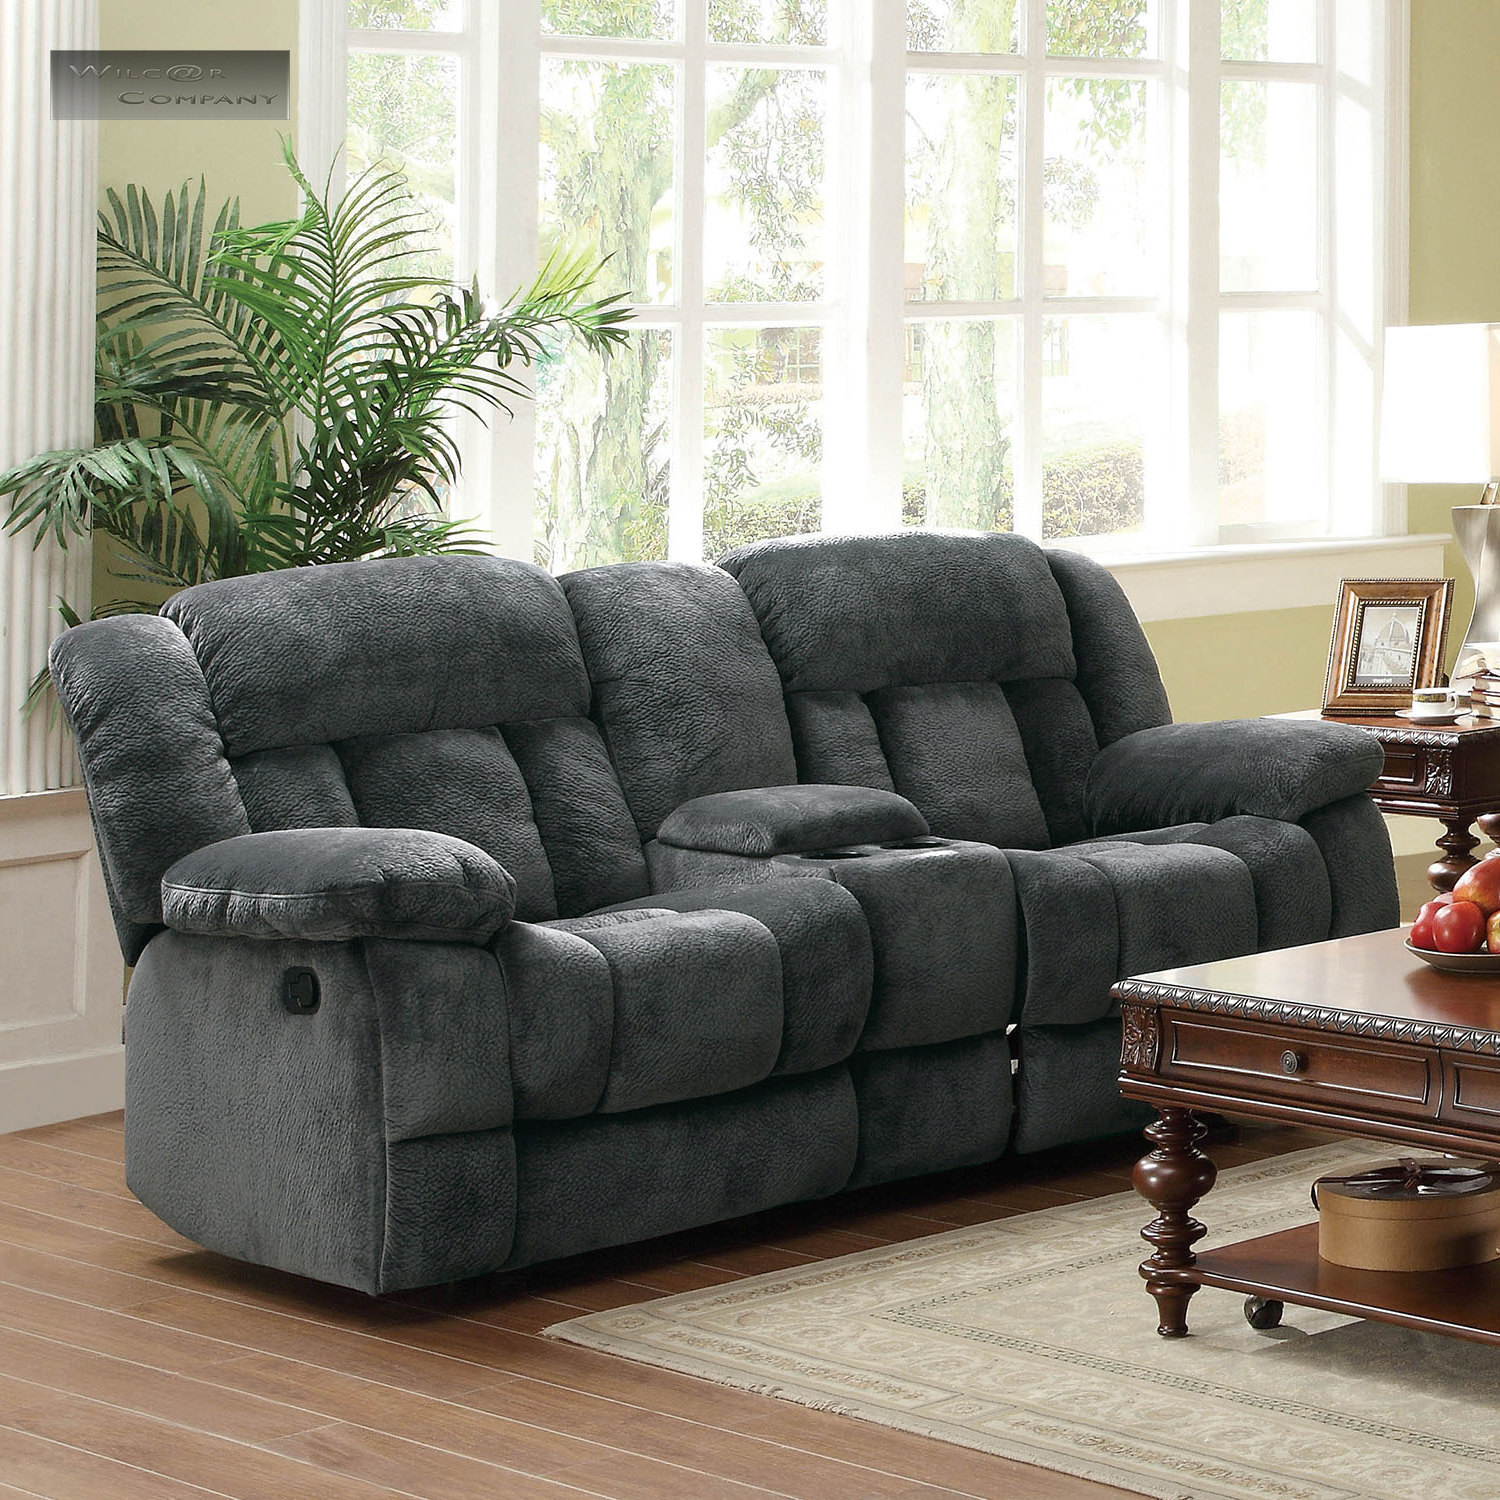 new grey rocker glider double recliner loveseat lazy sofa rocking reclining boy ebay. Black Bedroom Furniture Sets. Home Design Ideas